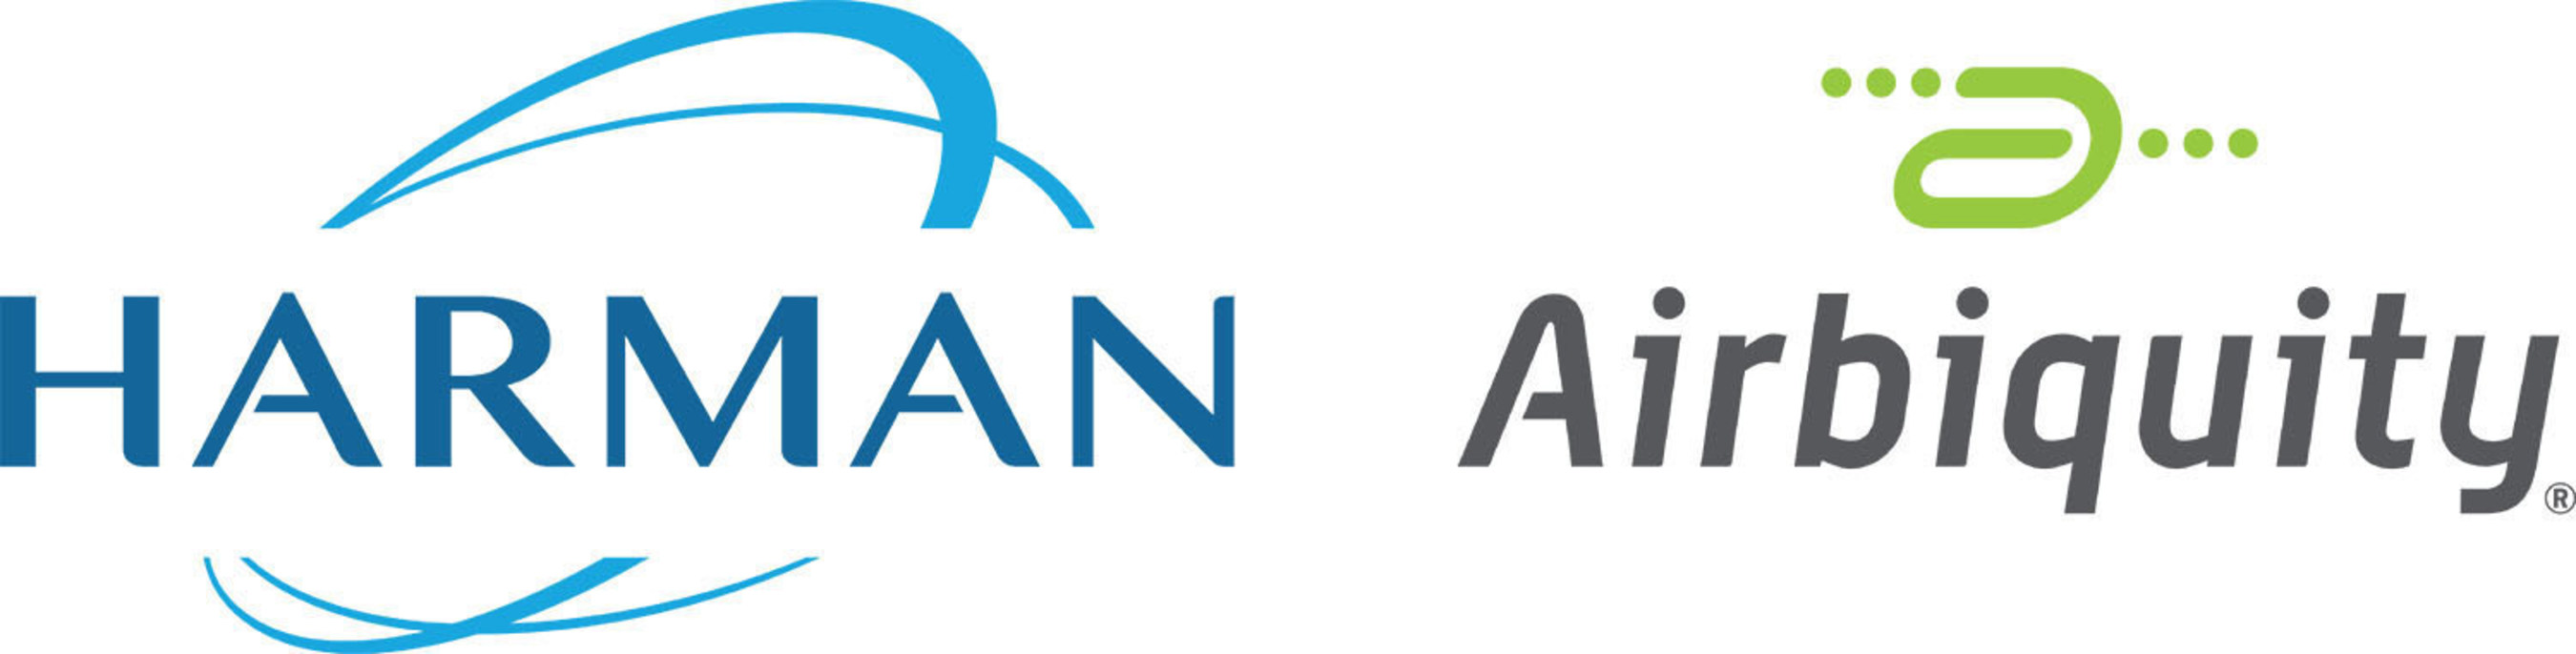 HARMAN and Airbiquity Announce the First Automotive Grade End-to-End Intrusion Detection Solution for Connected Vehicles